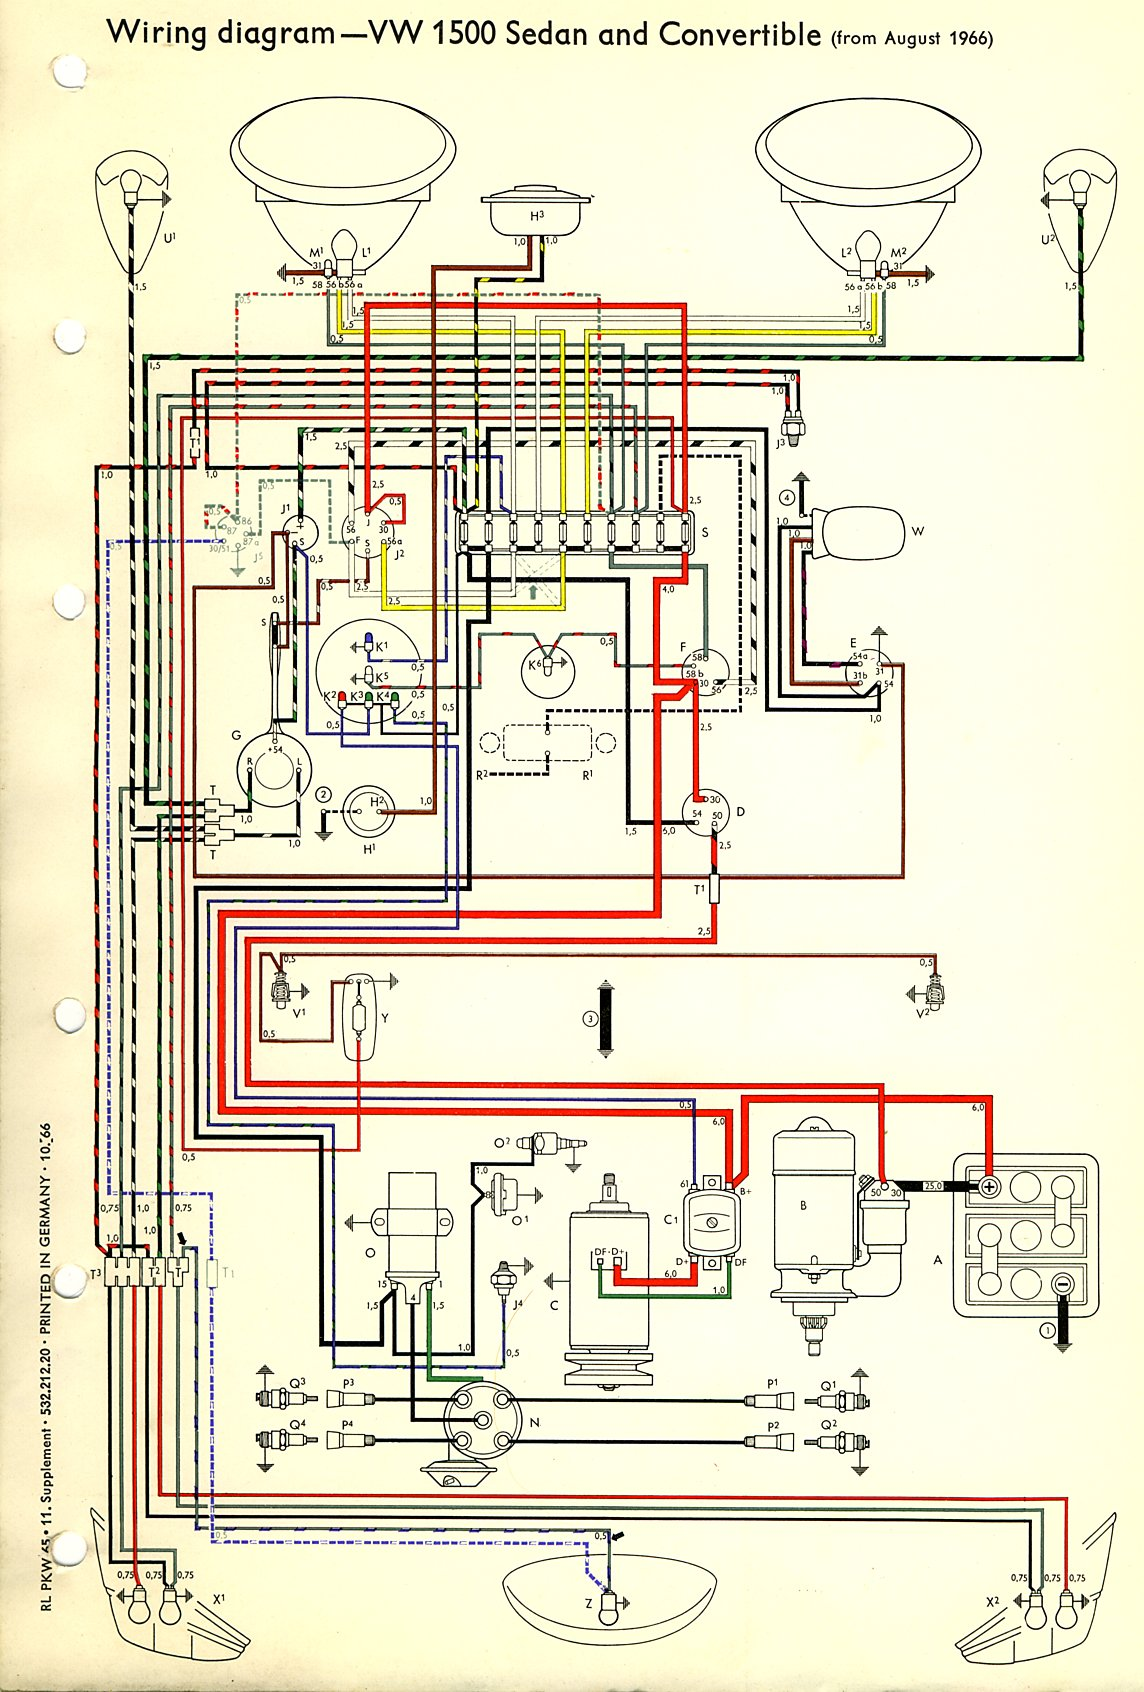 bug_67 1967 beetle wiring diagram thegoldenbug com 1973 vw wiring diagram at eliteediting.co